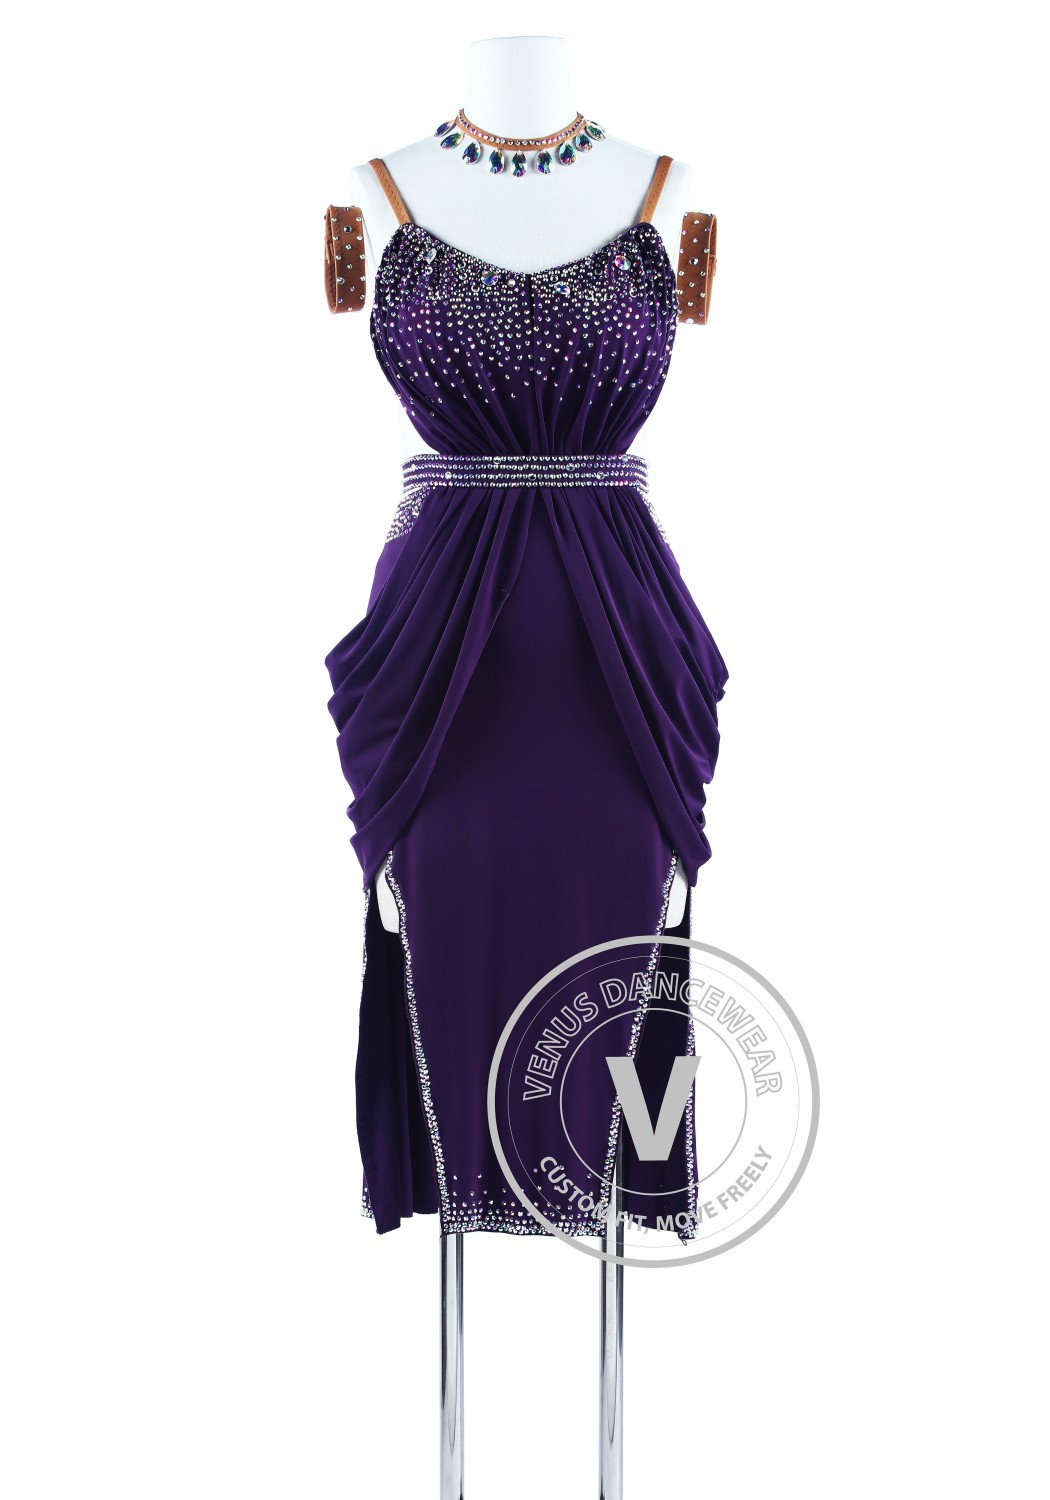 Plum Elegant American Ryhthm Sexy Salsa Latin Dance Competition Dress